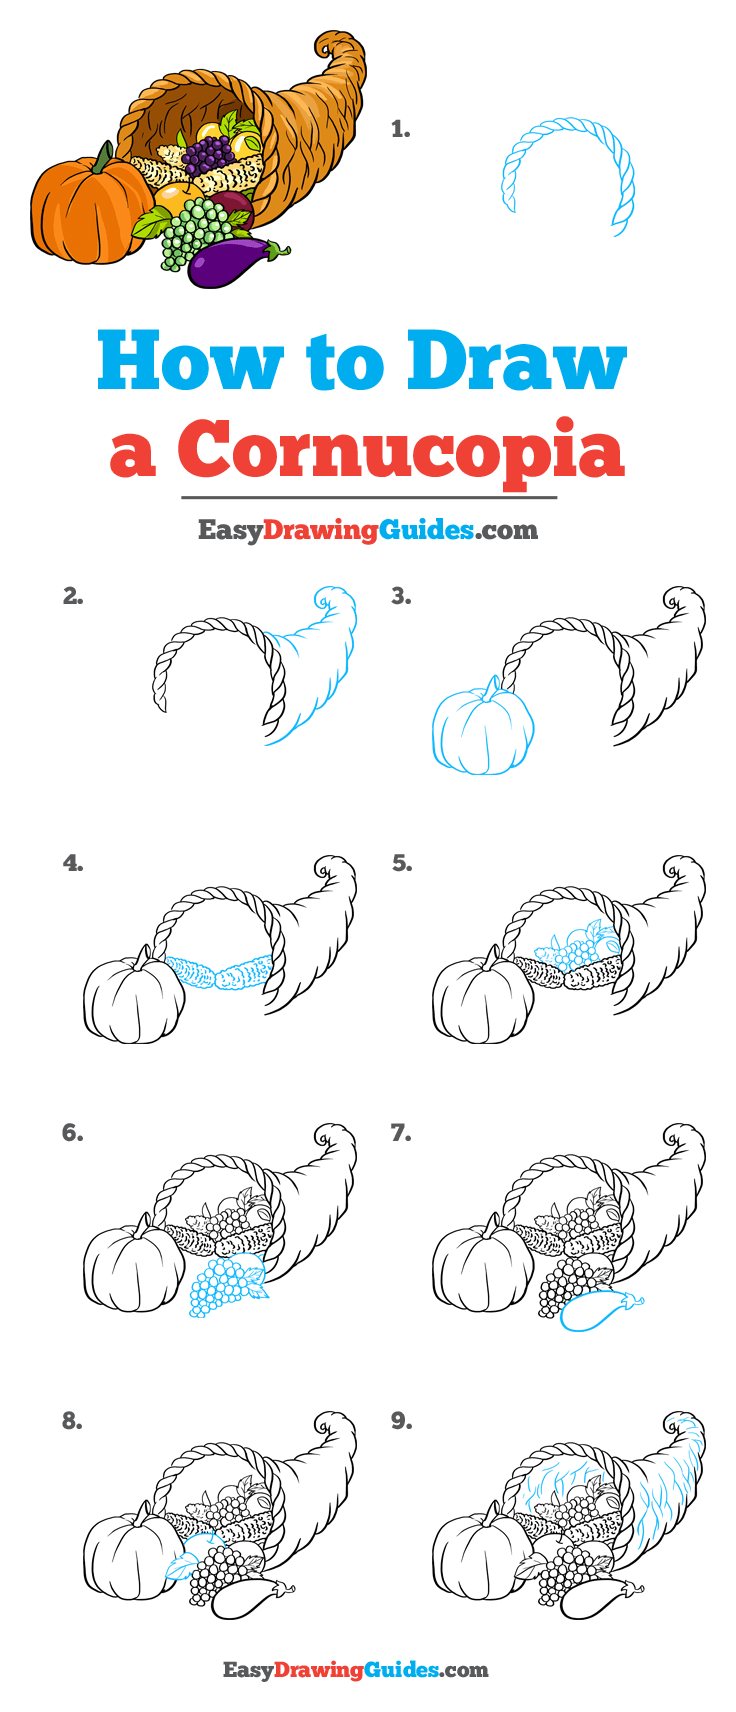 How to Draw Cornucopia